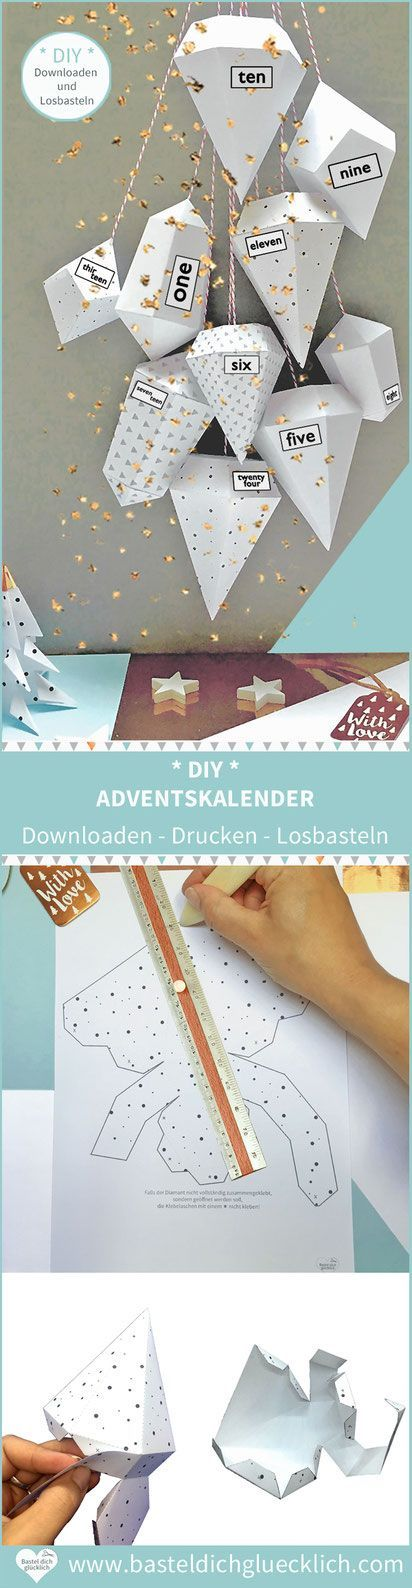 DIAMOND DIY ADVENT CALENDAR SELF-BASED - BASIC INSTRUCTIONS & TEMPLATES FOR PRINTING -   # #adventskalendermann